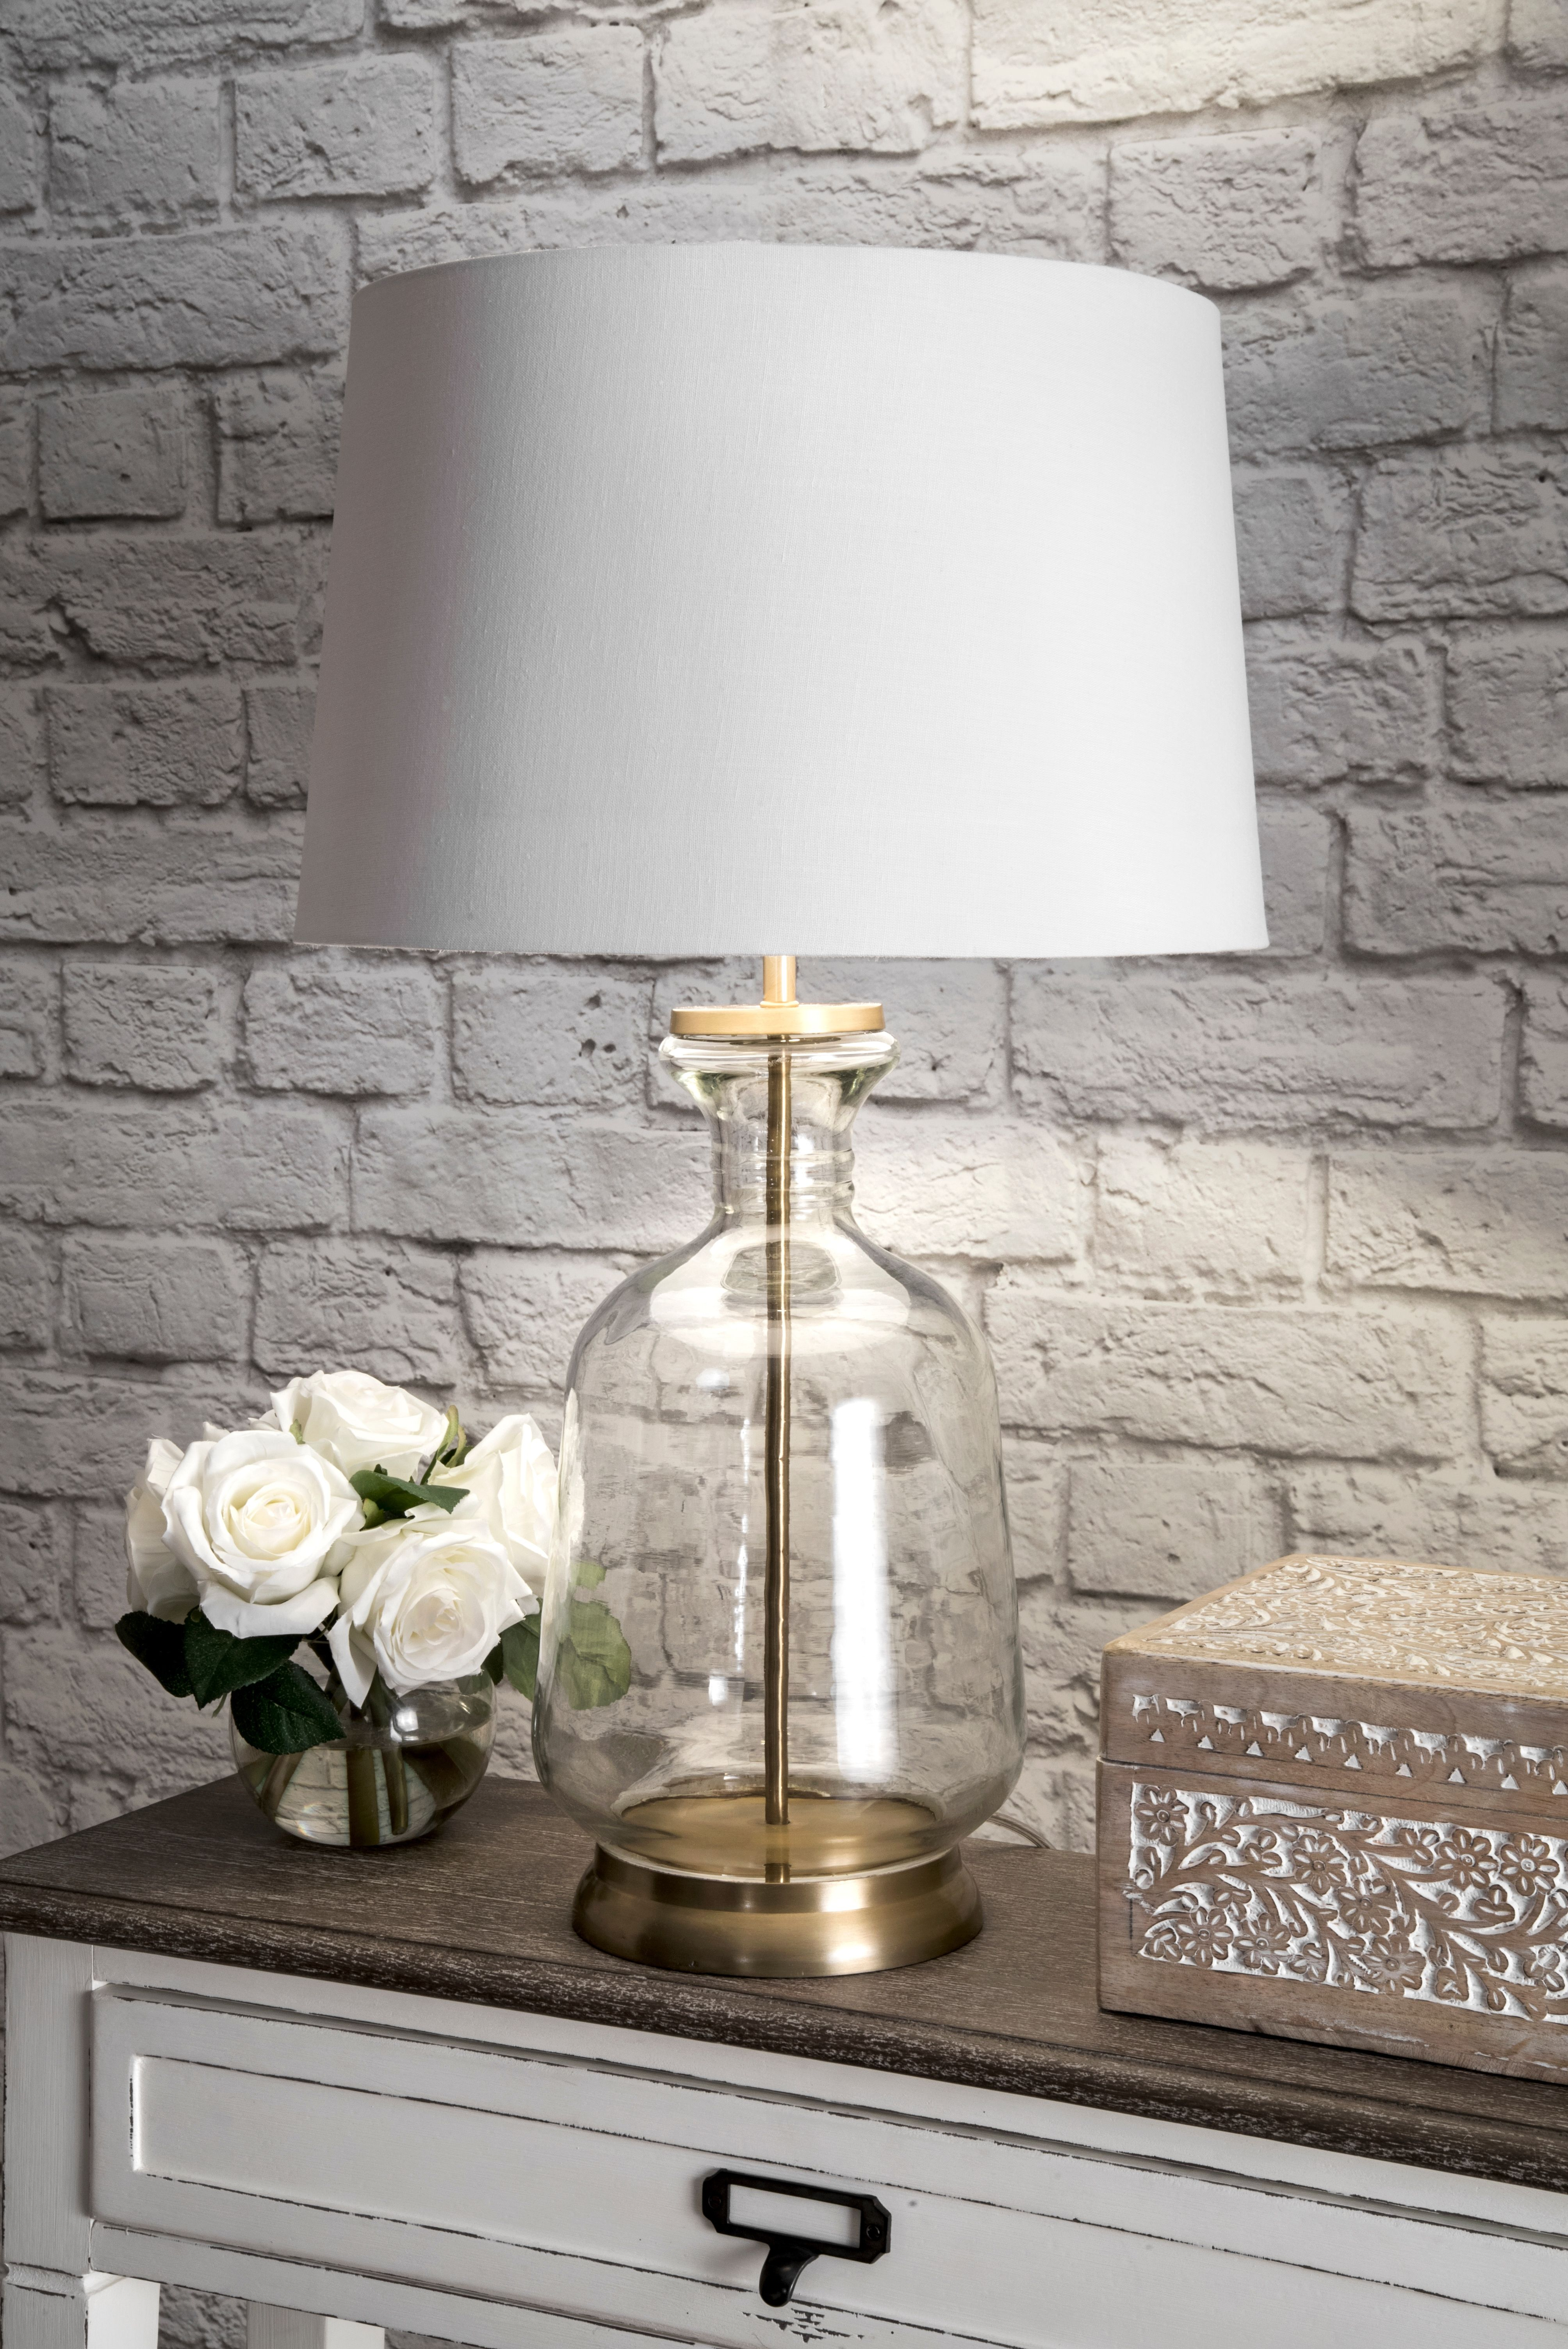 Rugs Usa Revere 24 Inch Emma Clear Glass Cotton Shade Table Lamp Lighting Clear Glass Table Lamp Gold Table Lamp Table Lamp